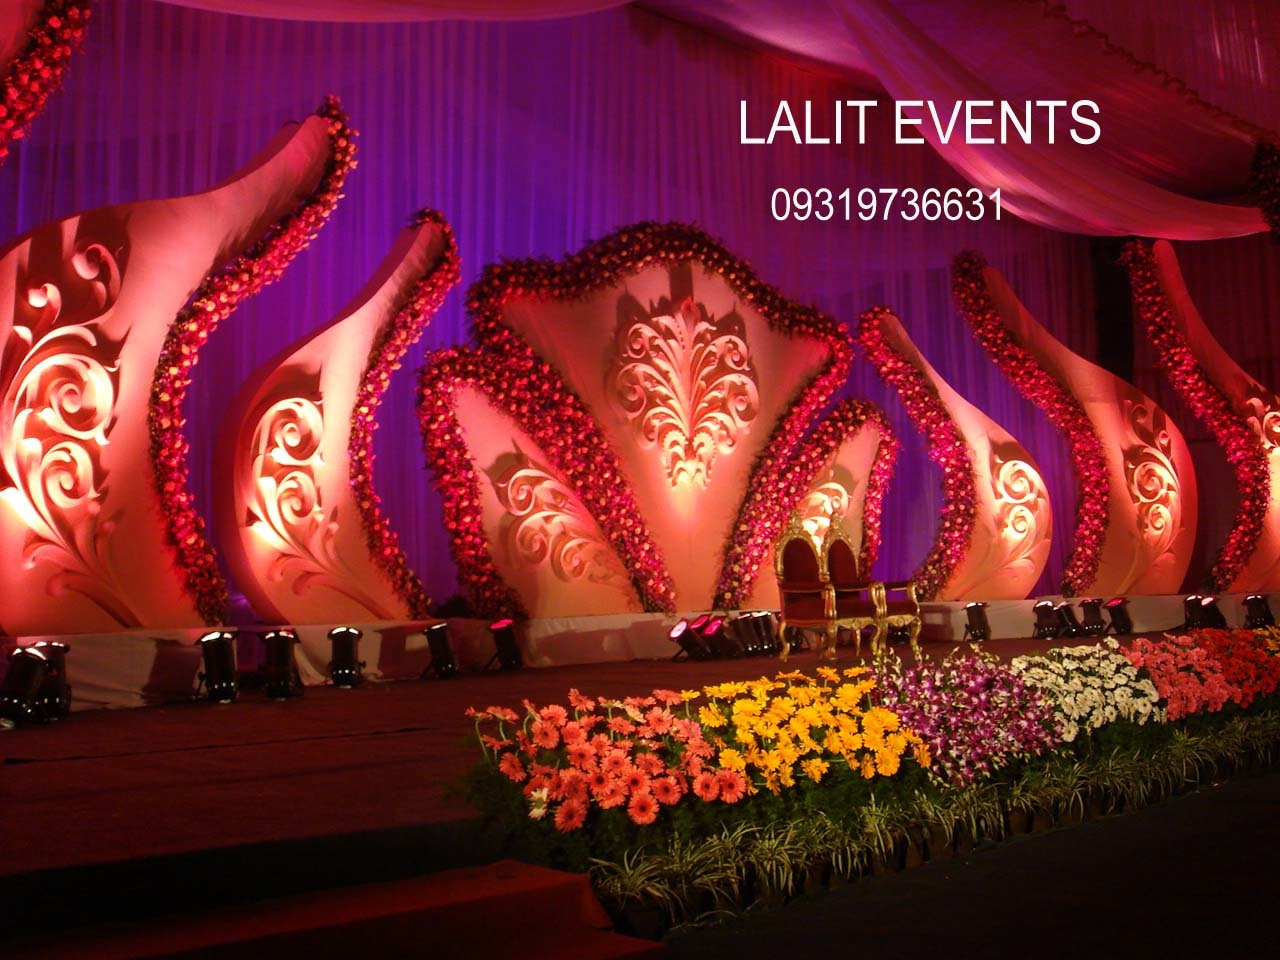 Lalit Events